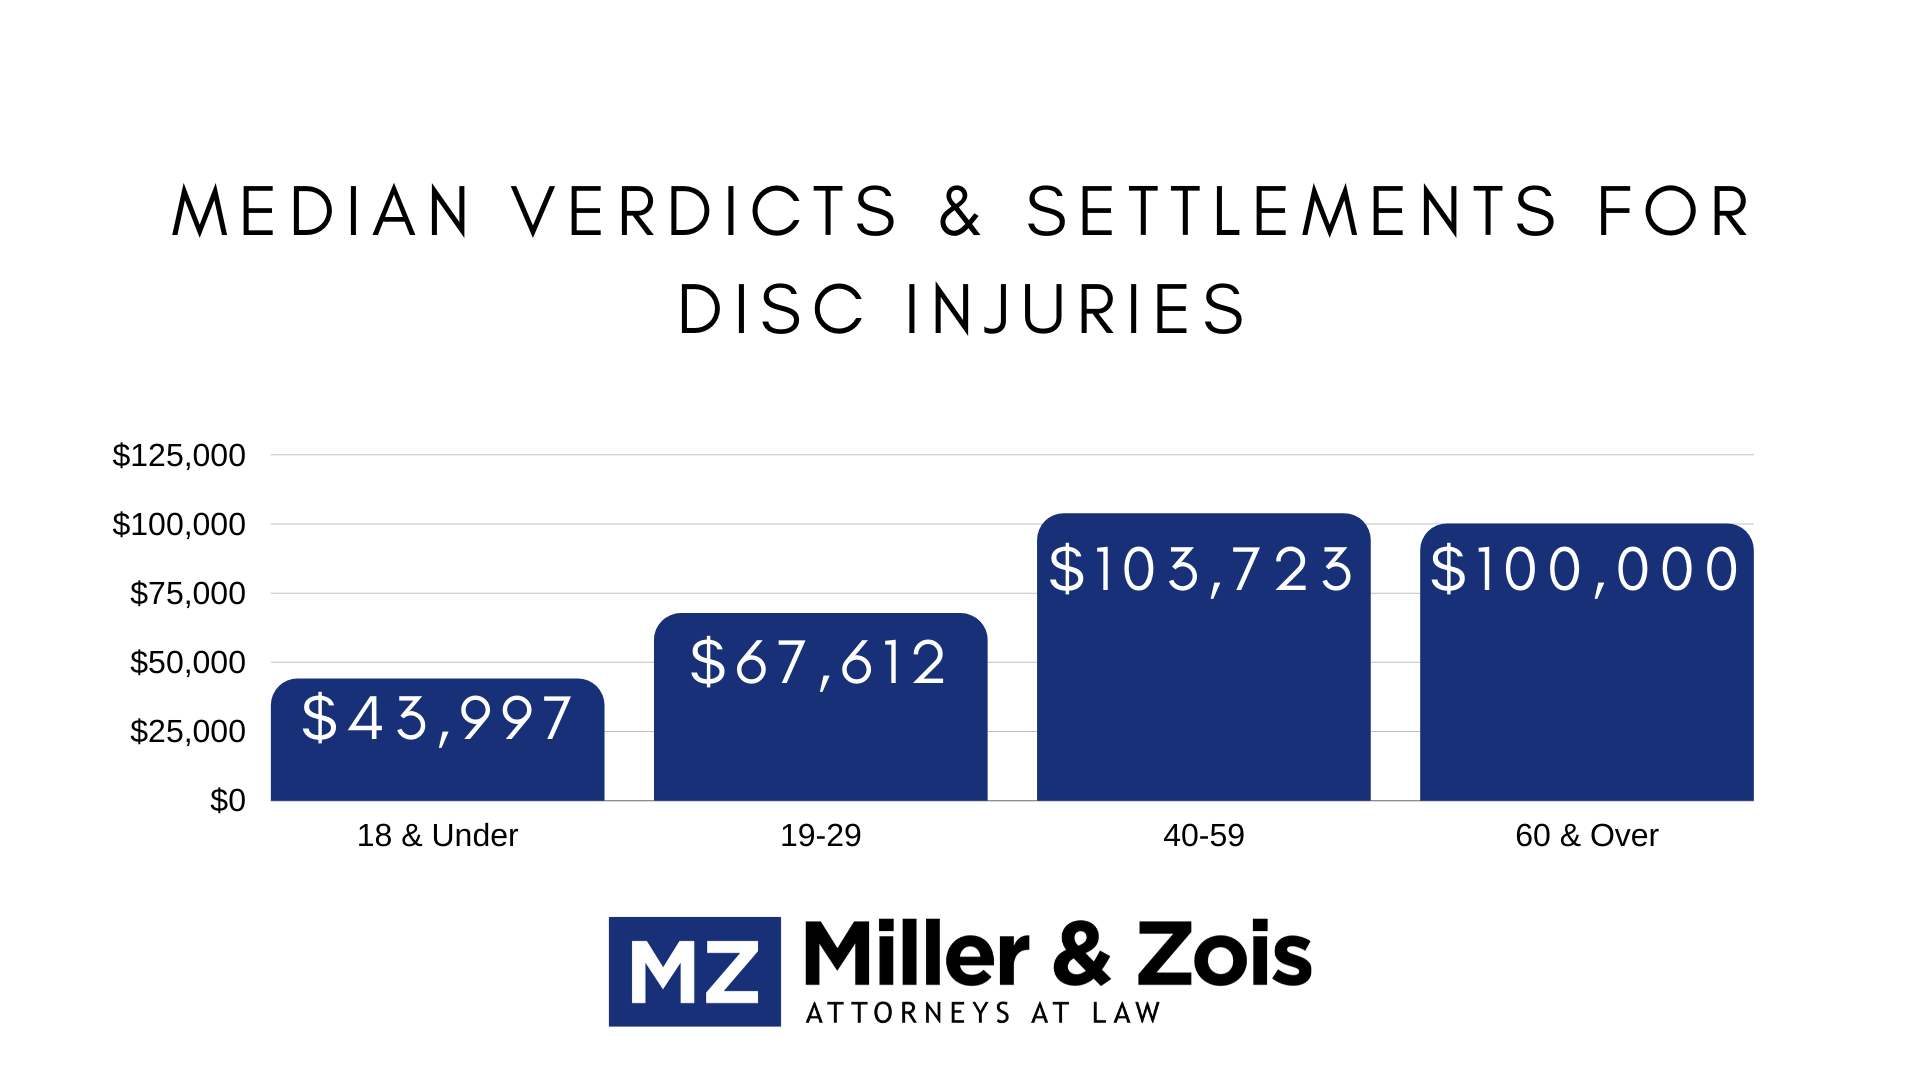 median verdicts settlements disc injuries